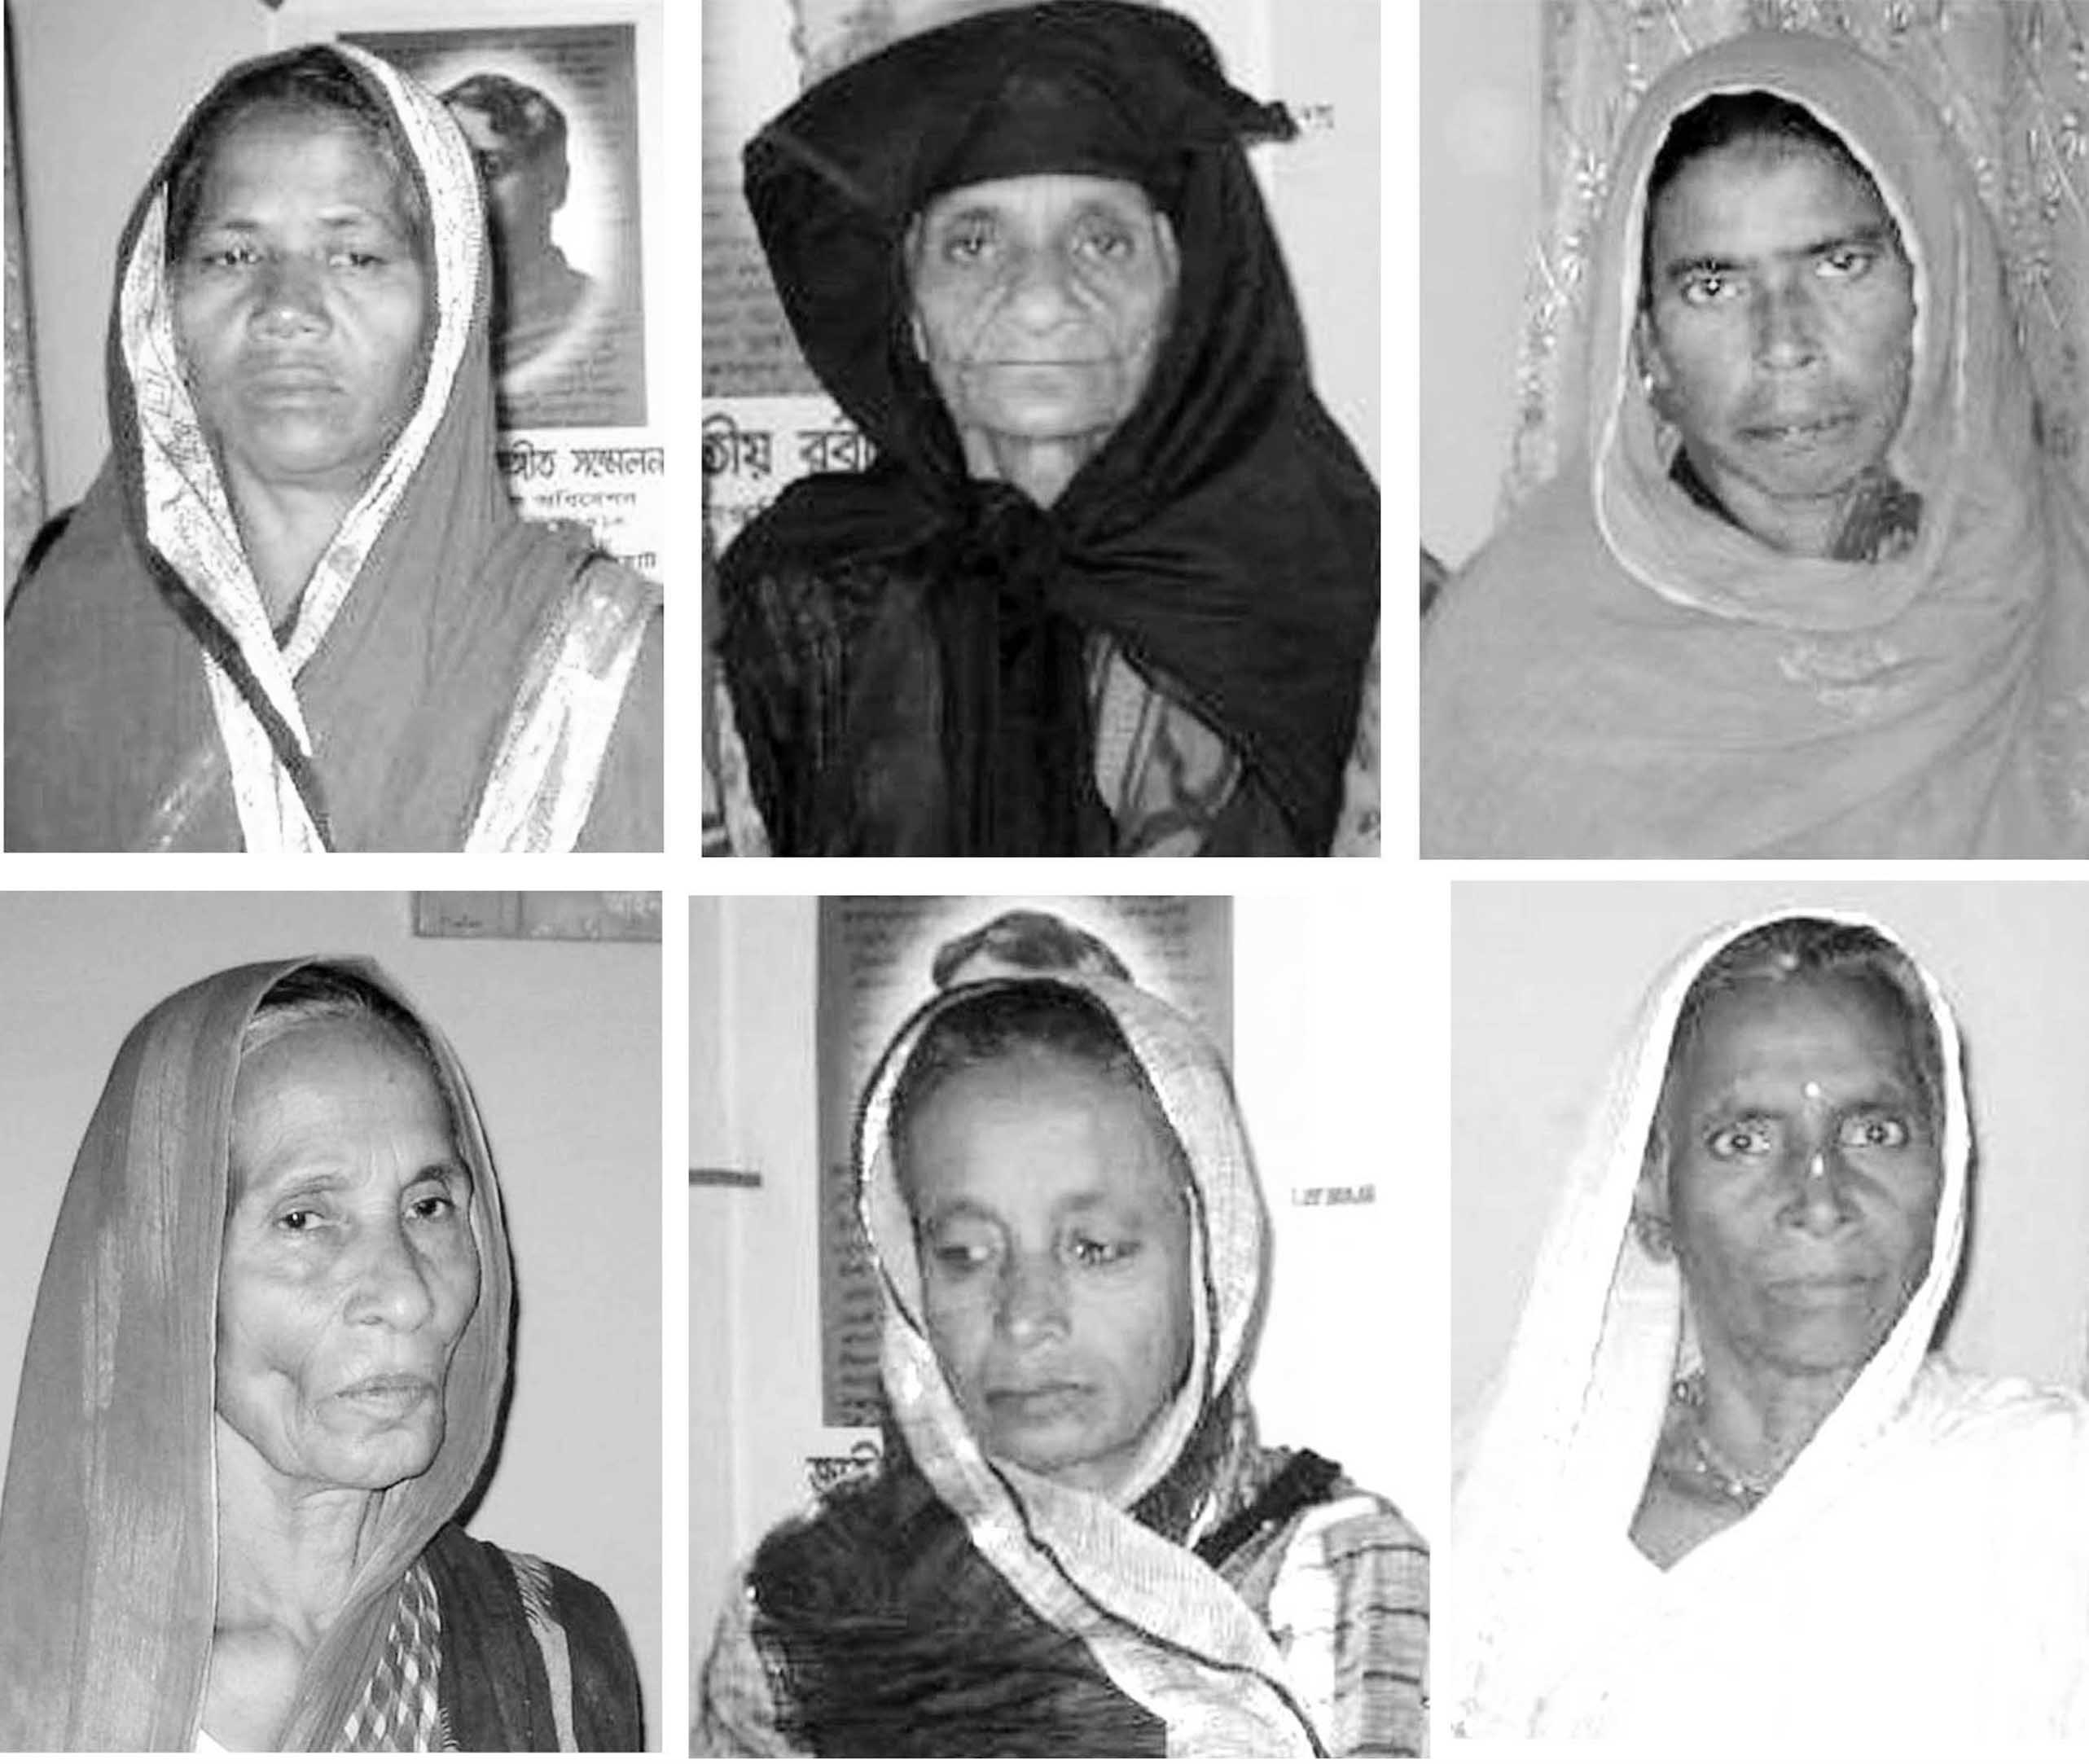 Recognition as freedom fighters brings satisfaction to Sirajganj Birangonas